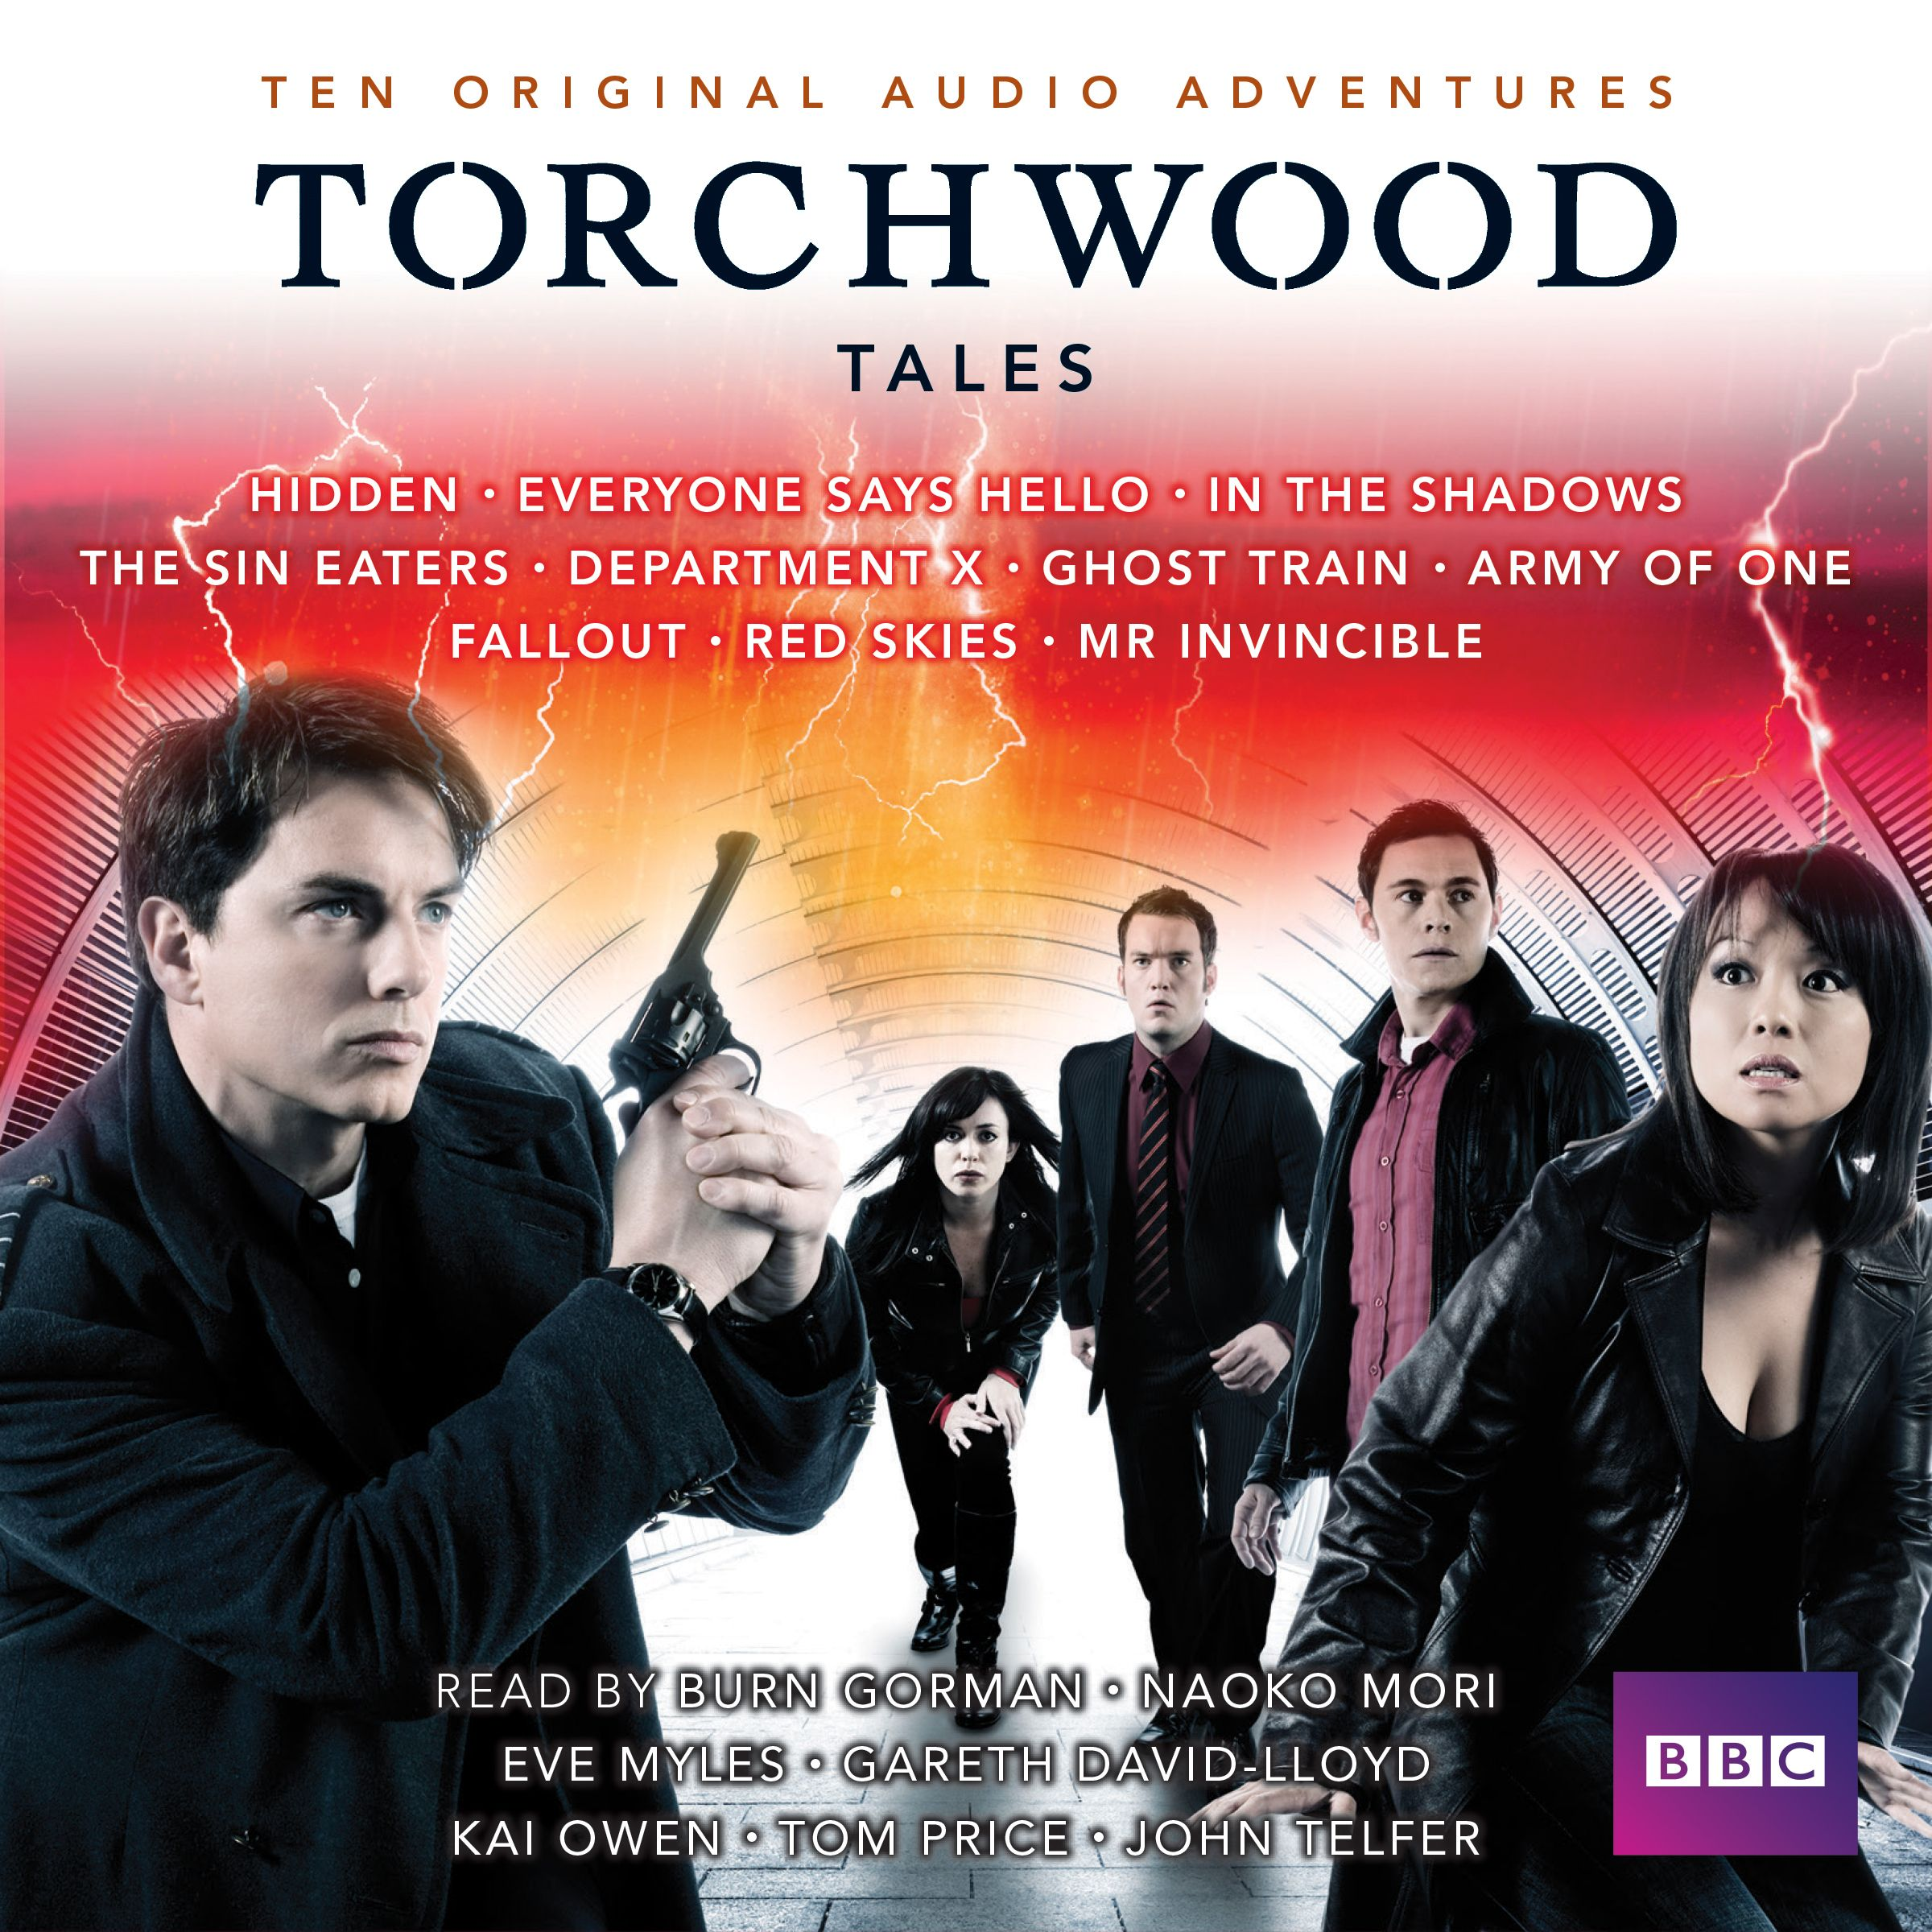 Torchwood Tales (Credit: BBC Audio)